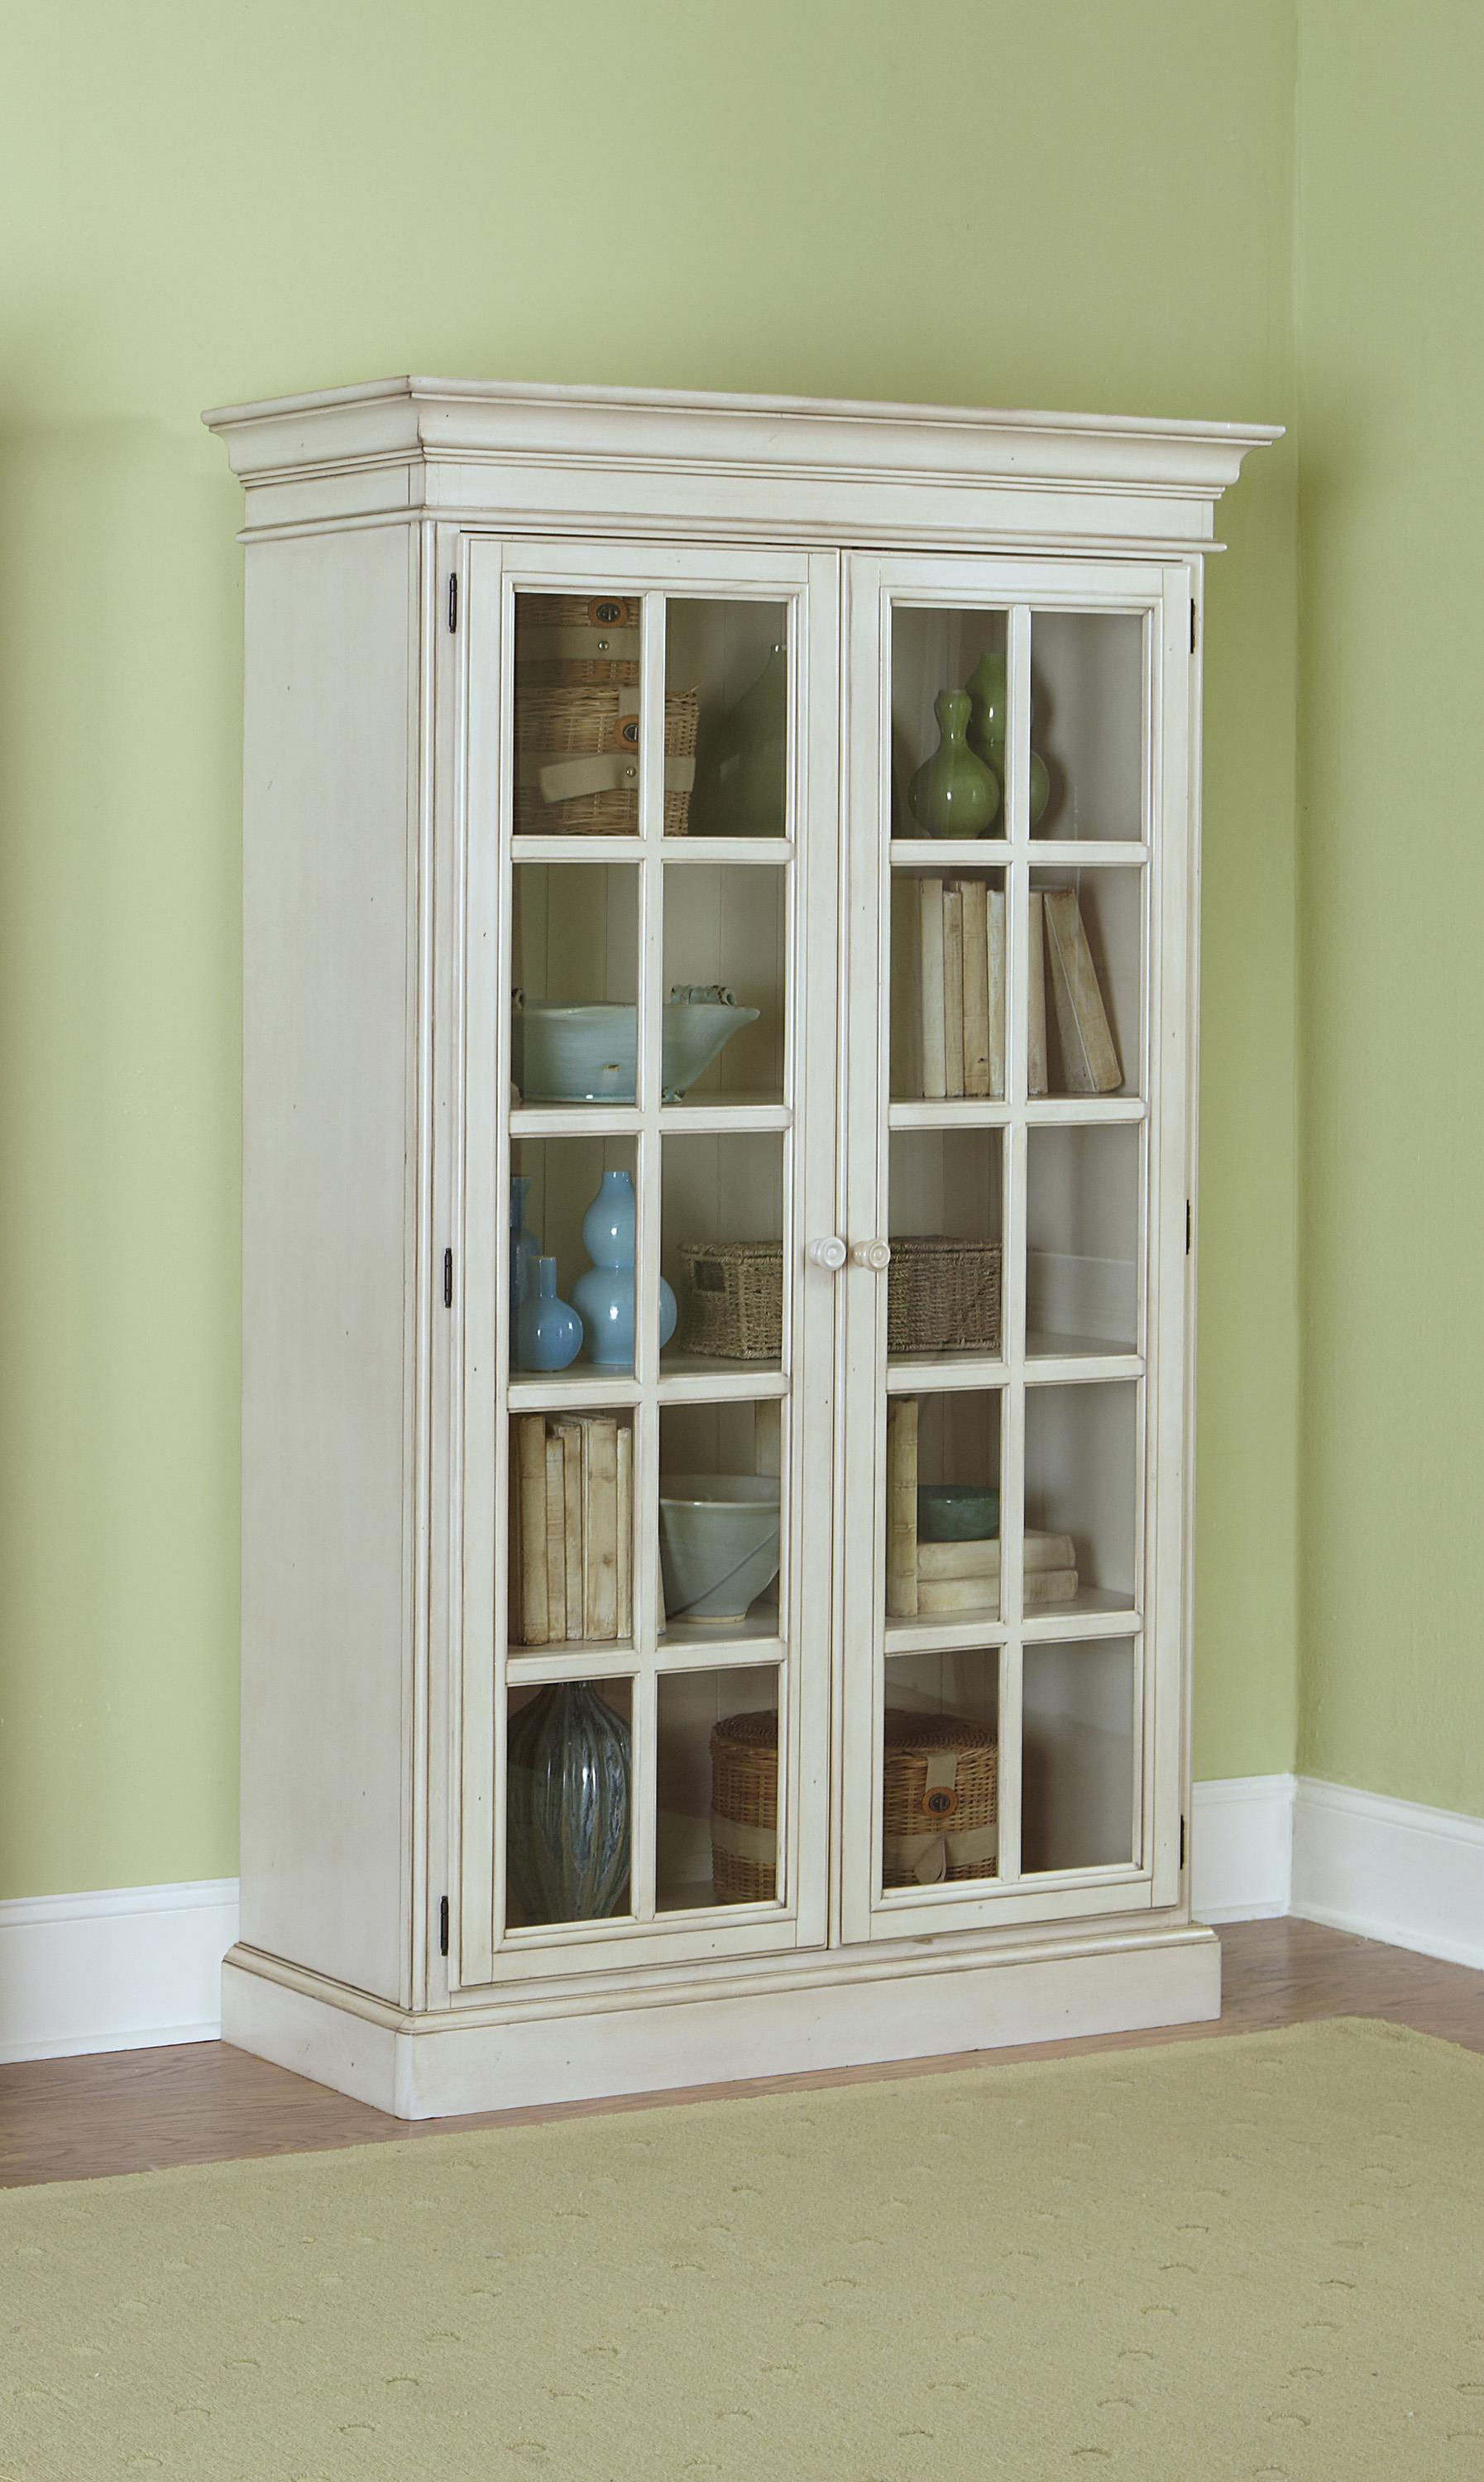 Genial Large Library Cabinet With 2 Glass Doors And Crown Molding